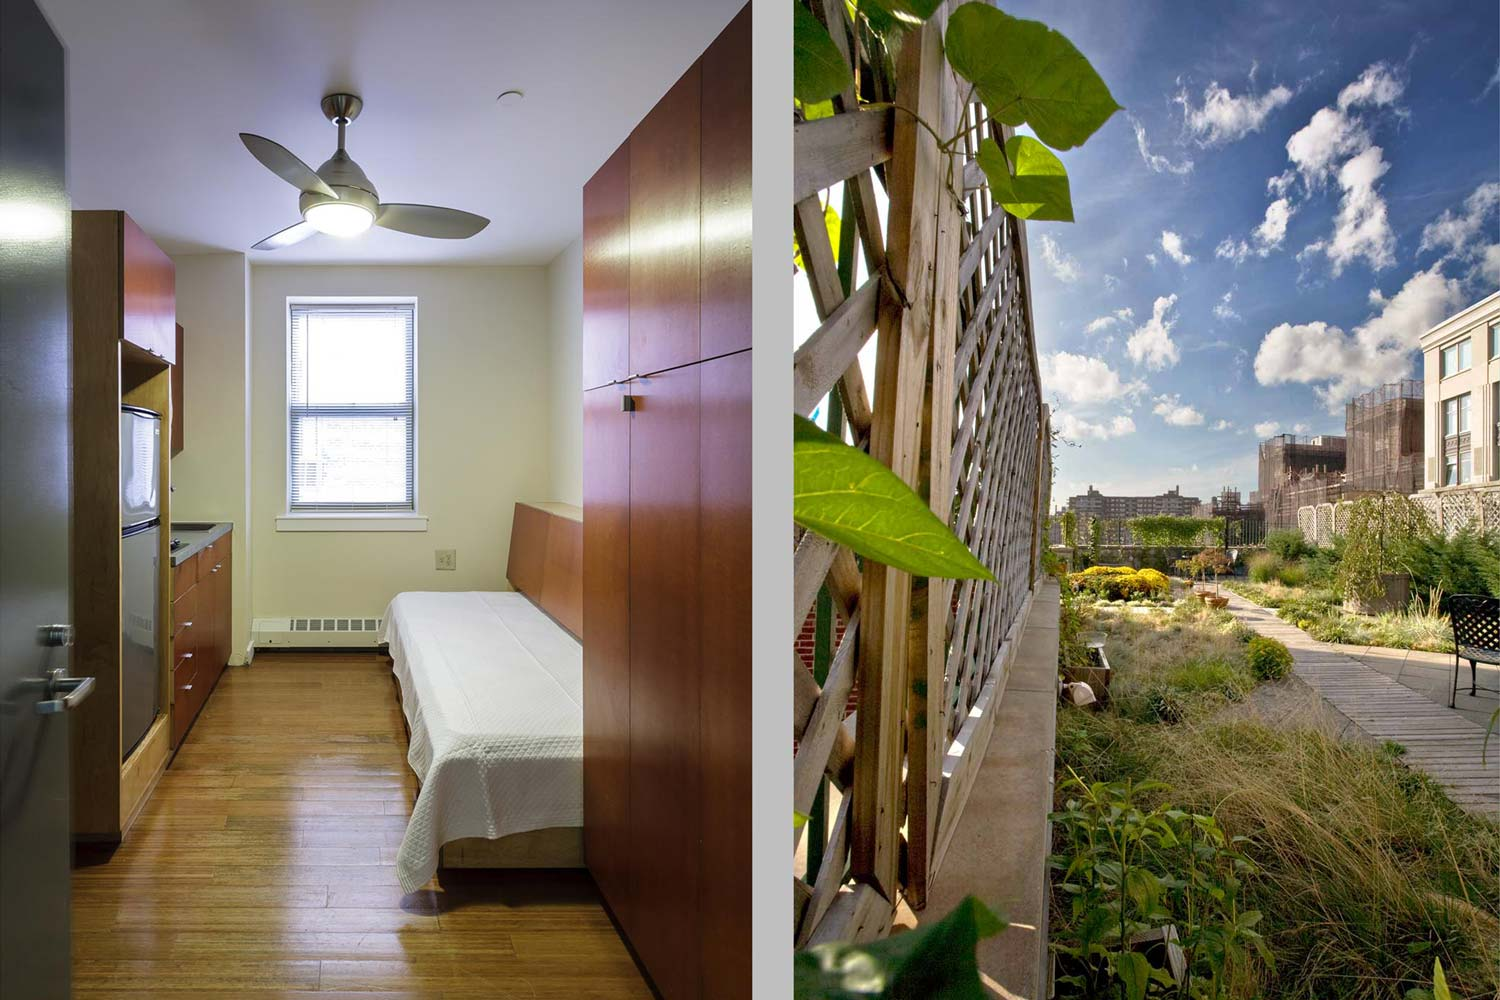 Units feature custom designed single beds. The green roof is one of the first for supportive housing in NYC.